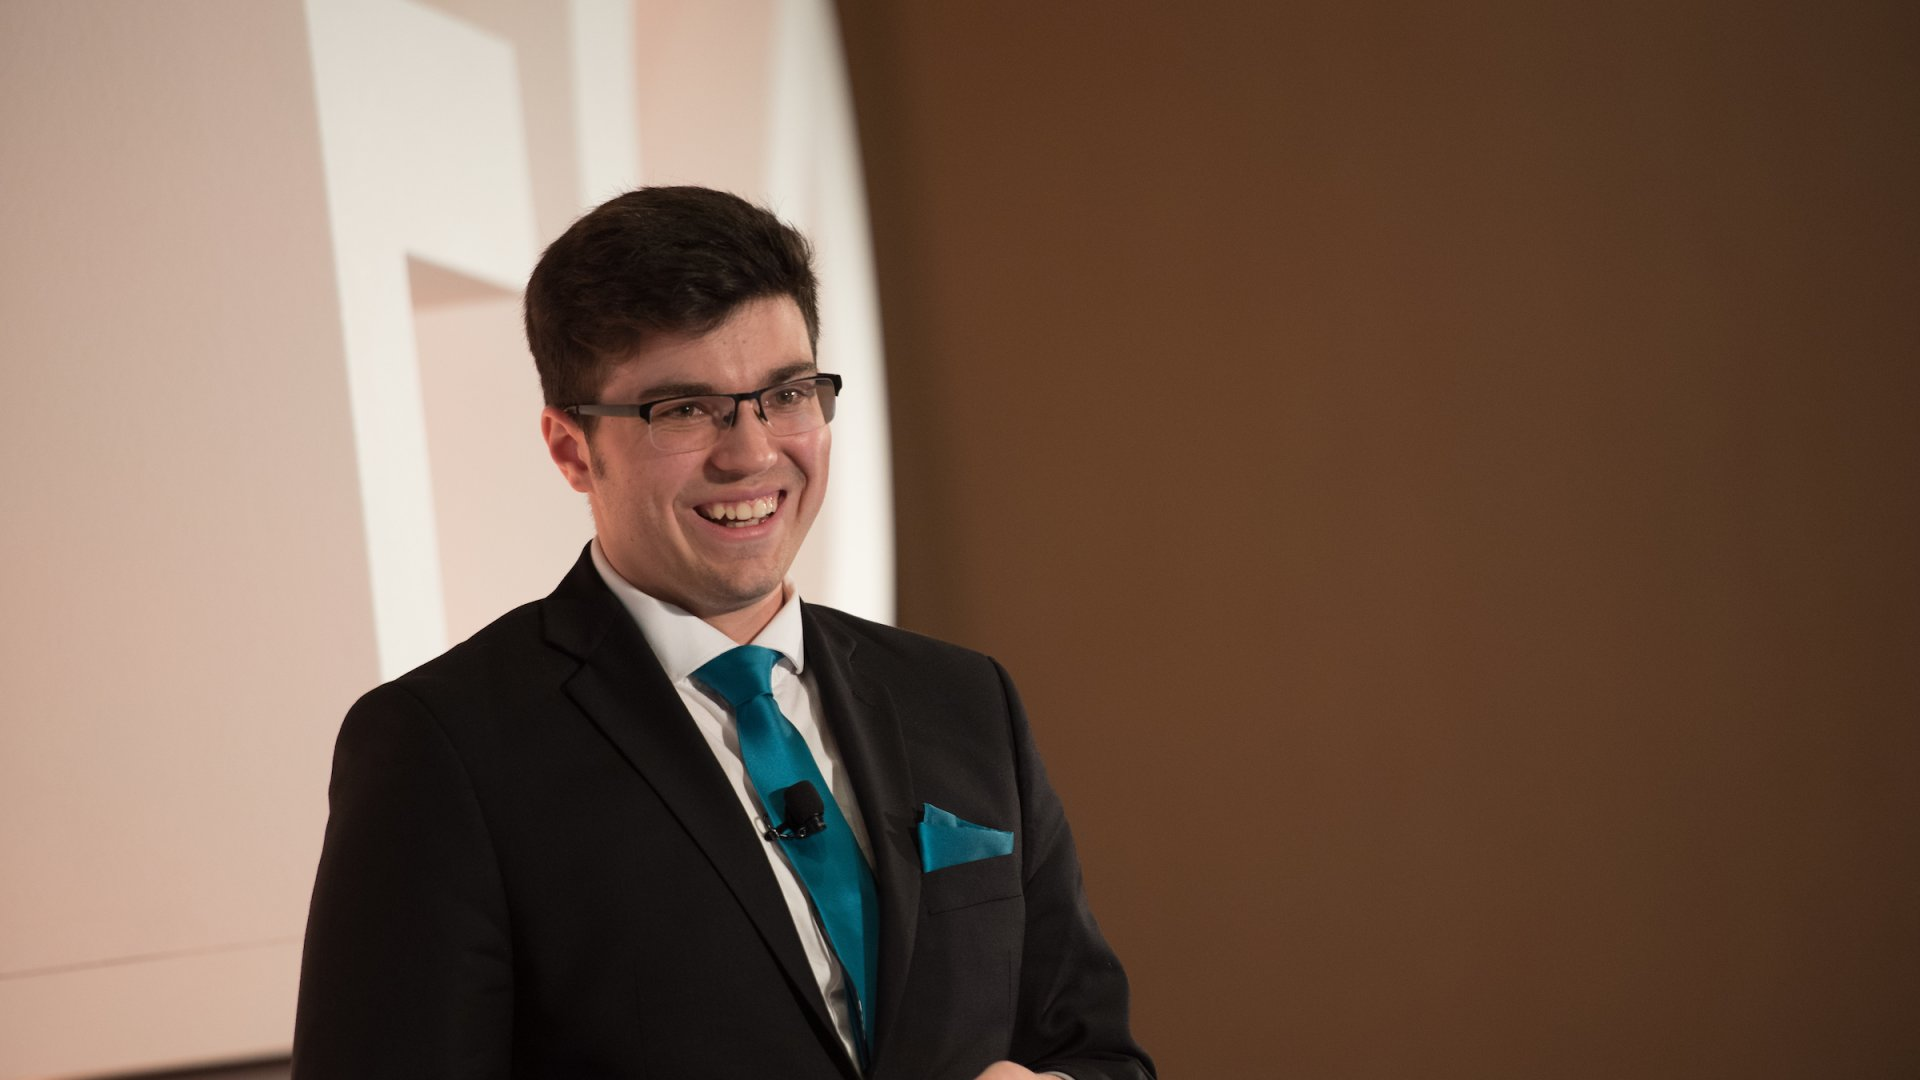 André Bertram represented Canada as a global finalist in the Entrepreneurs' Organization's 2018 Global Student Entrepreneurship Awards competition